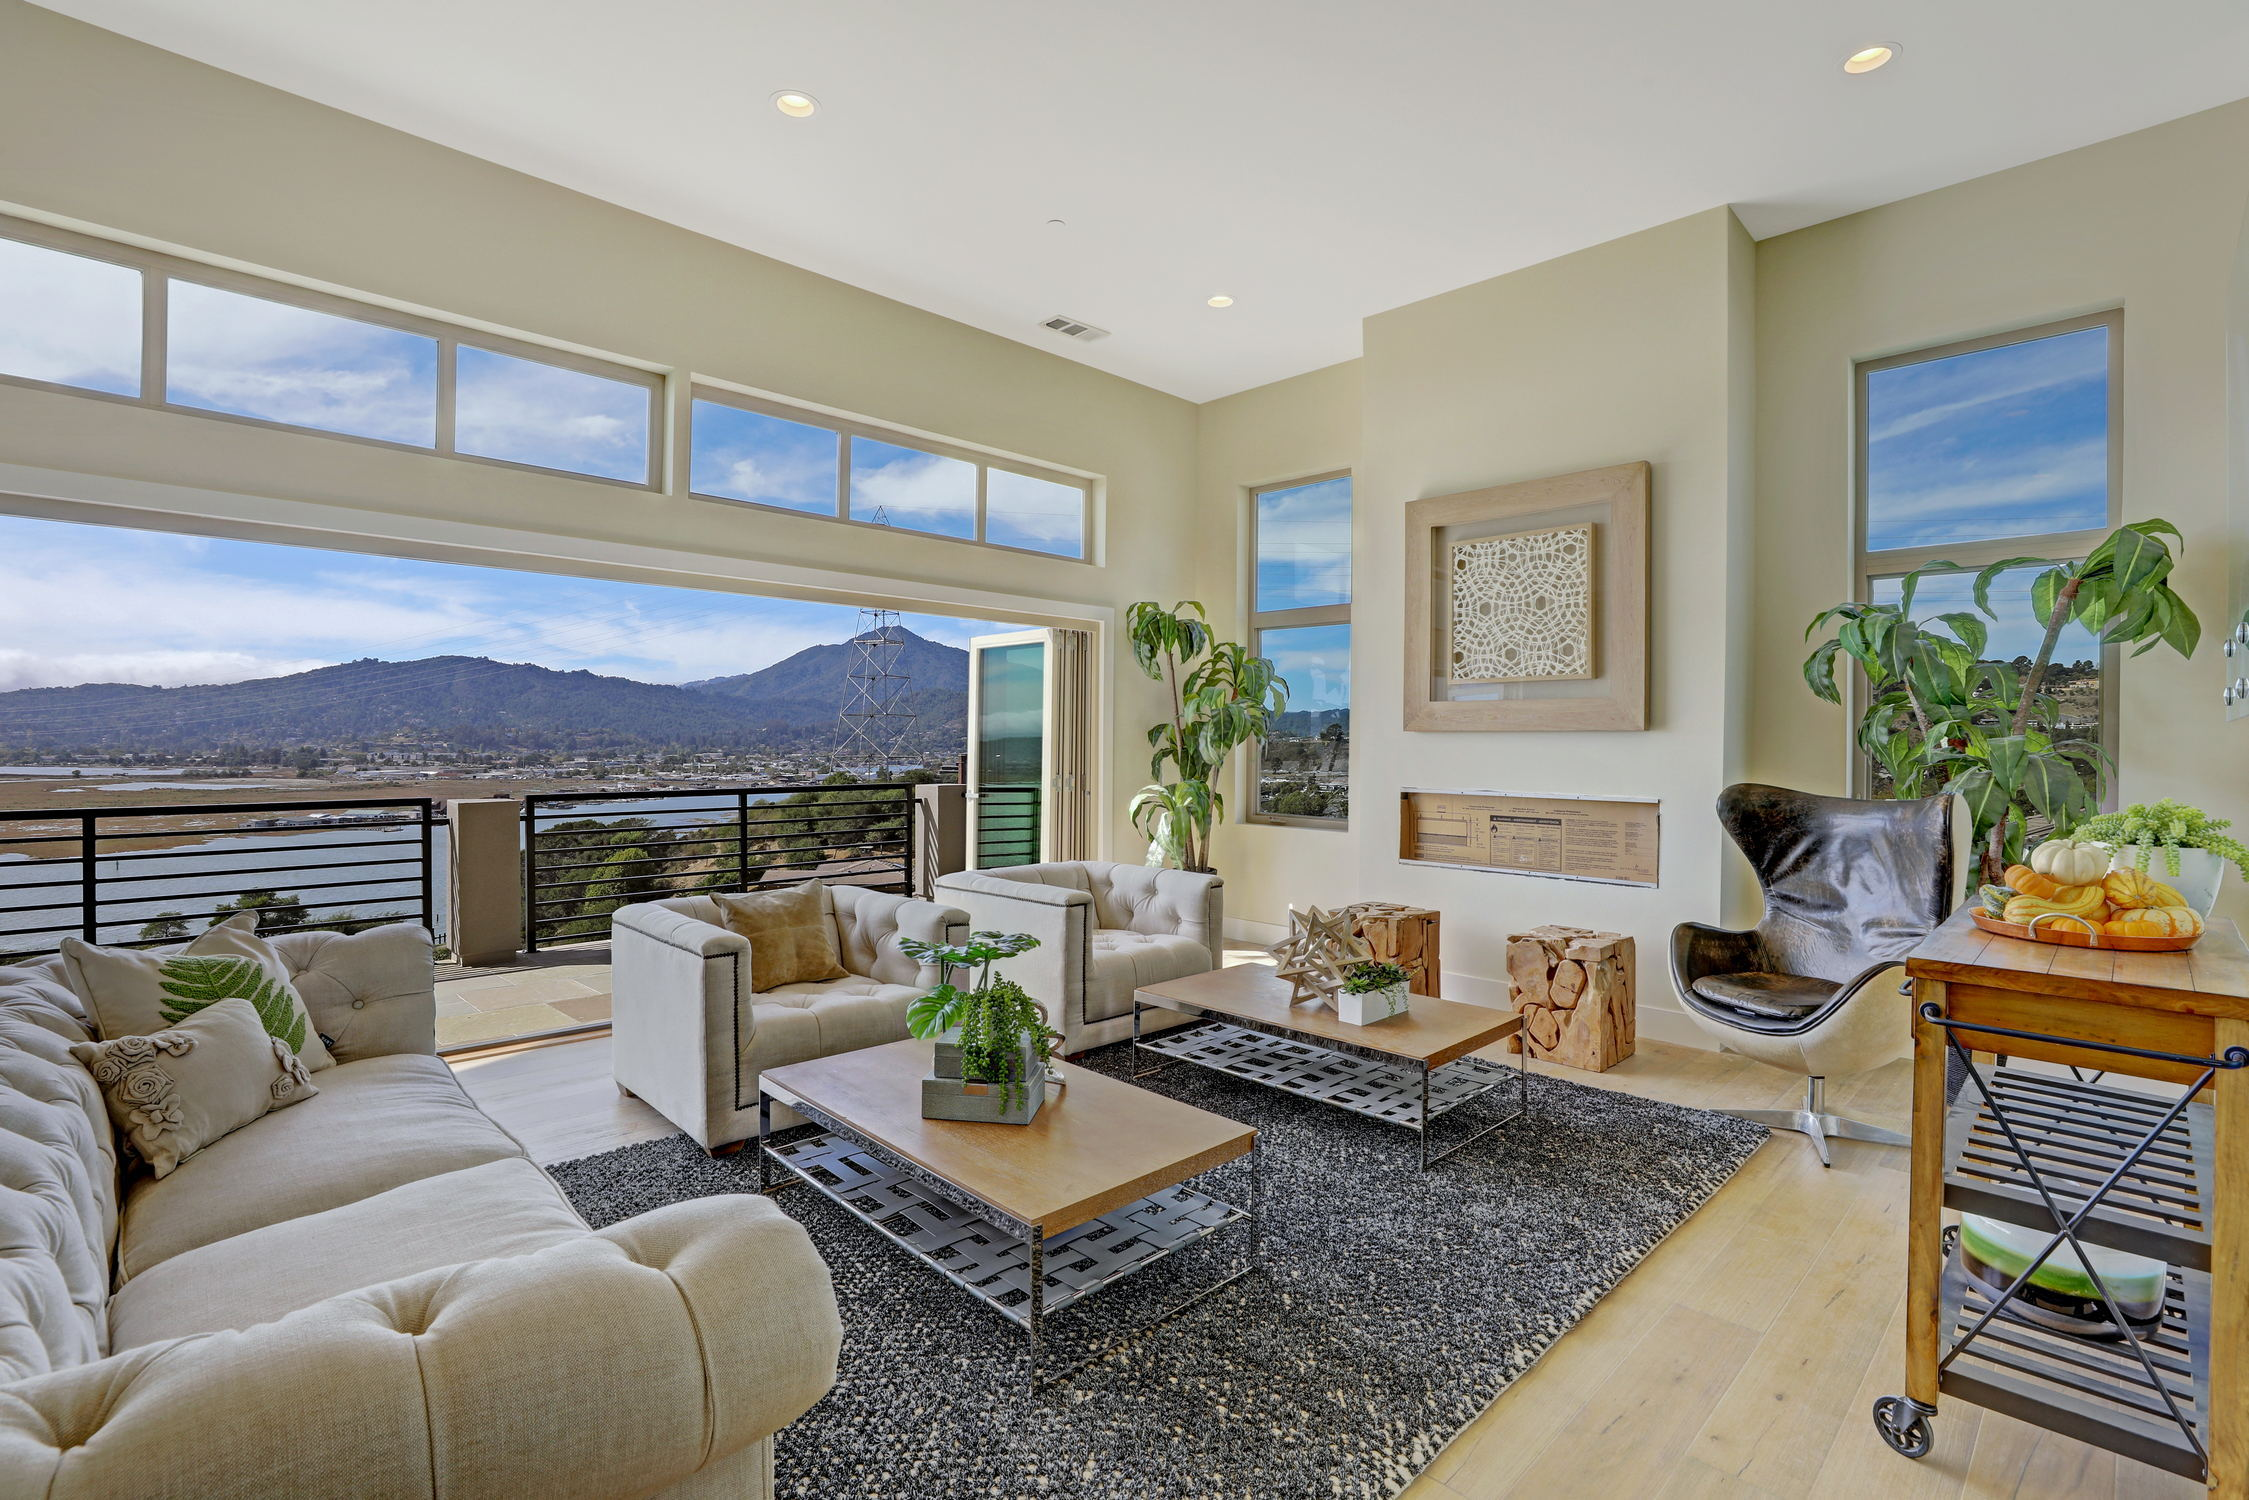 31 Drakes Cove, Larkspur Homes for Sale21 MLS - Own Marin with Compass - Mill Valley Realtor.jpg